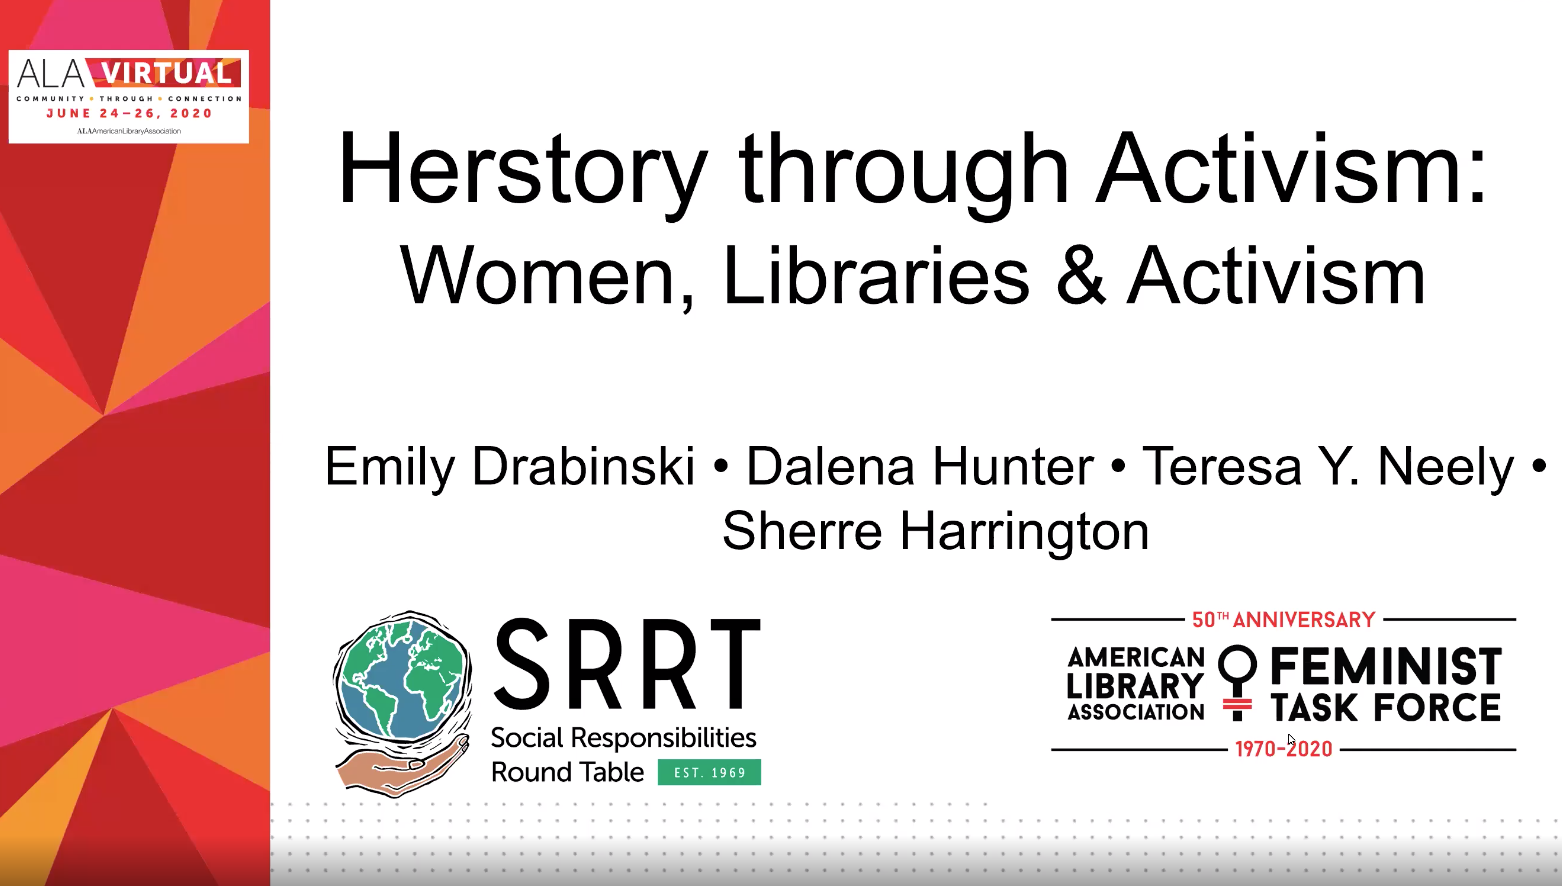 Intersections of Women, Libraries, and Activism | ALA Virtual 2020